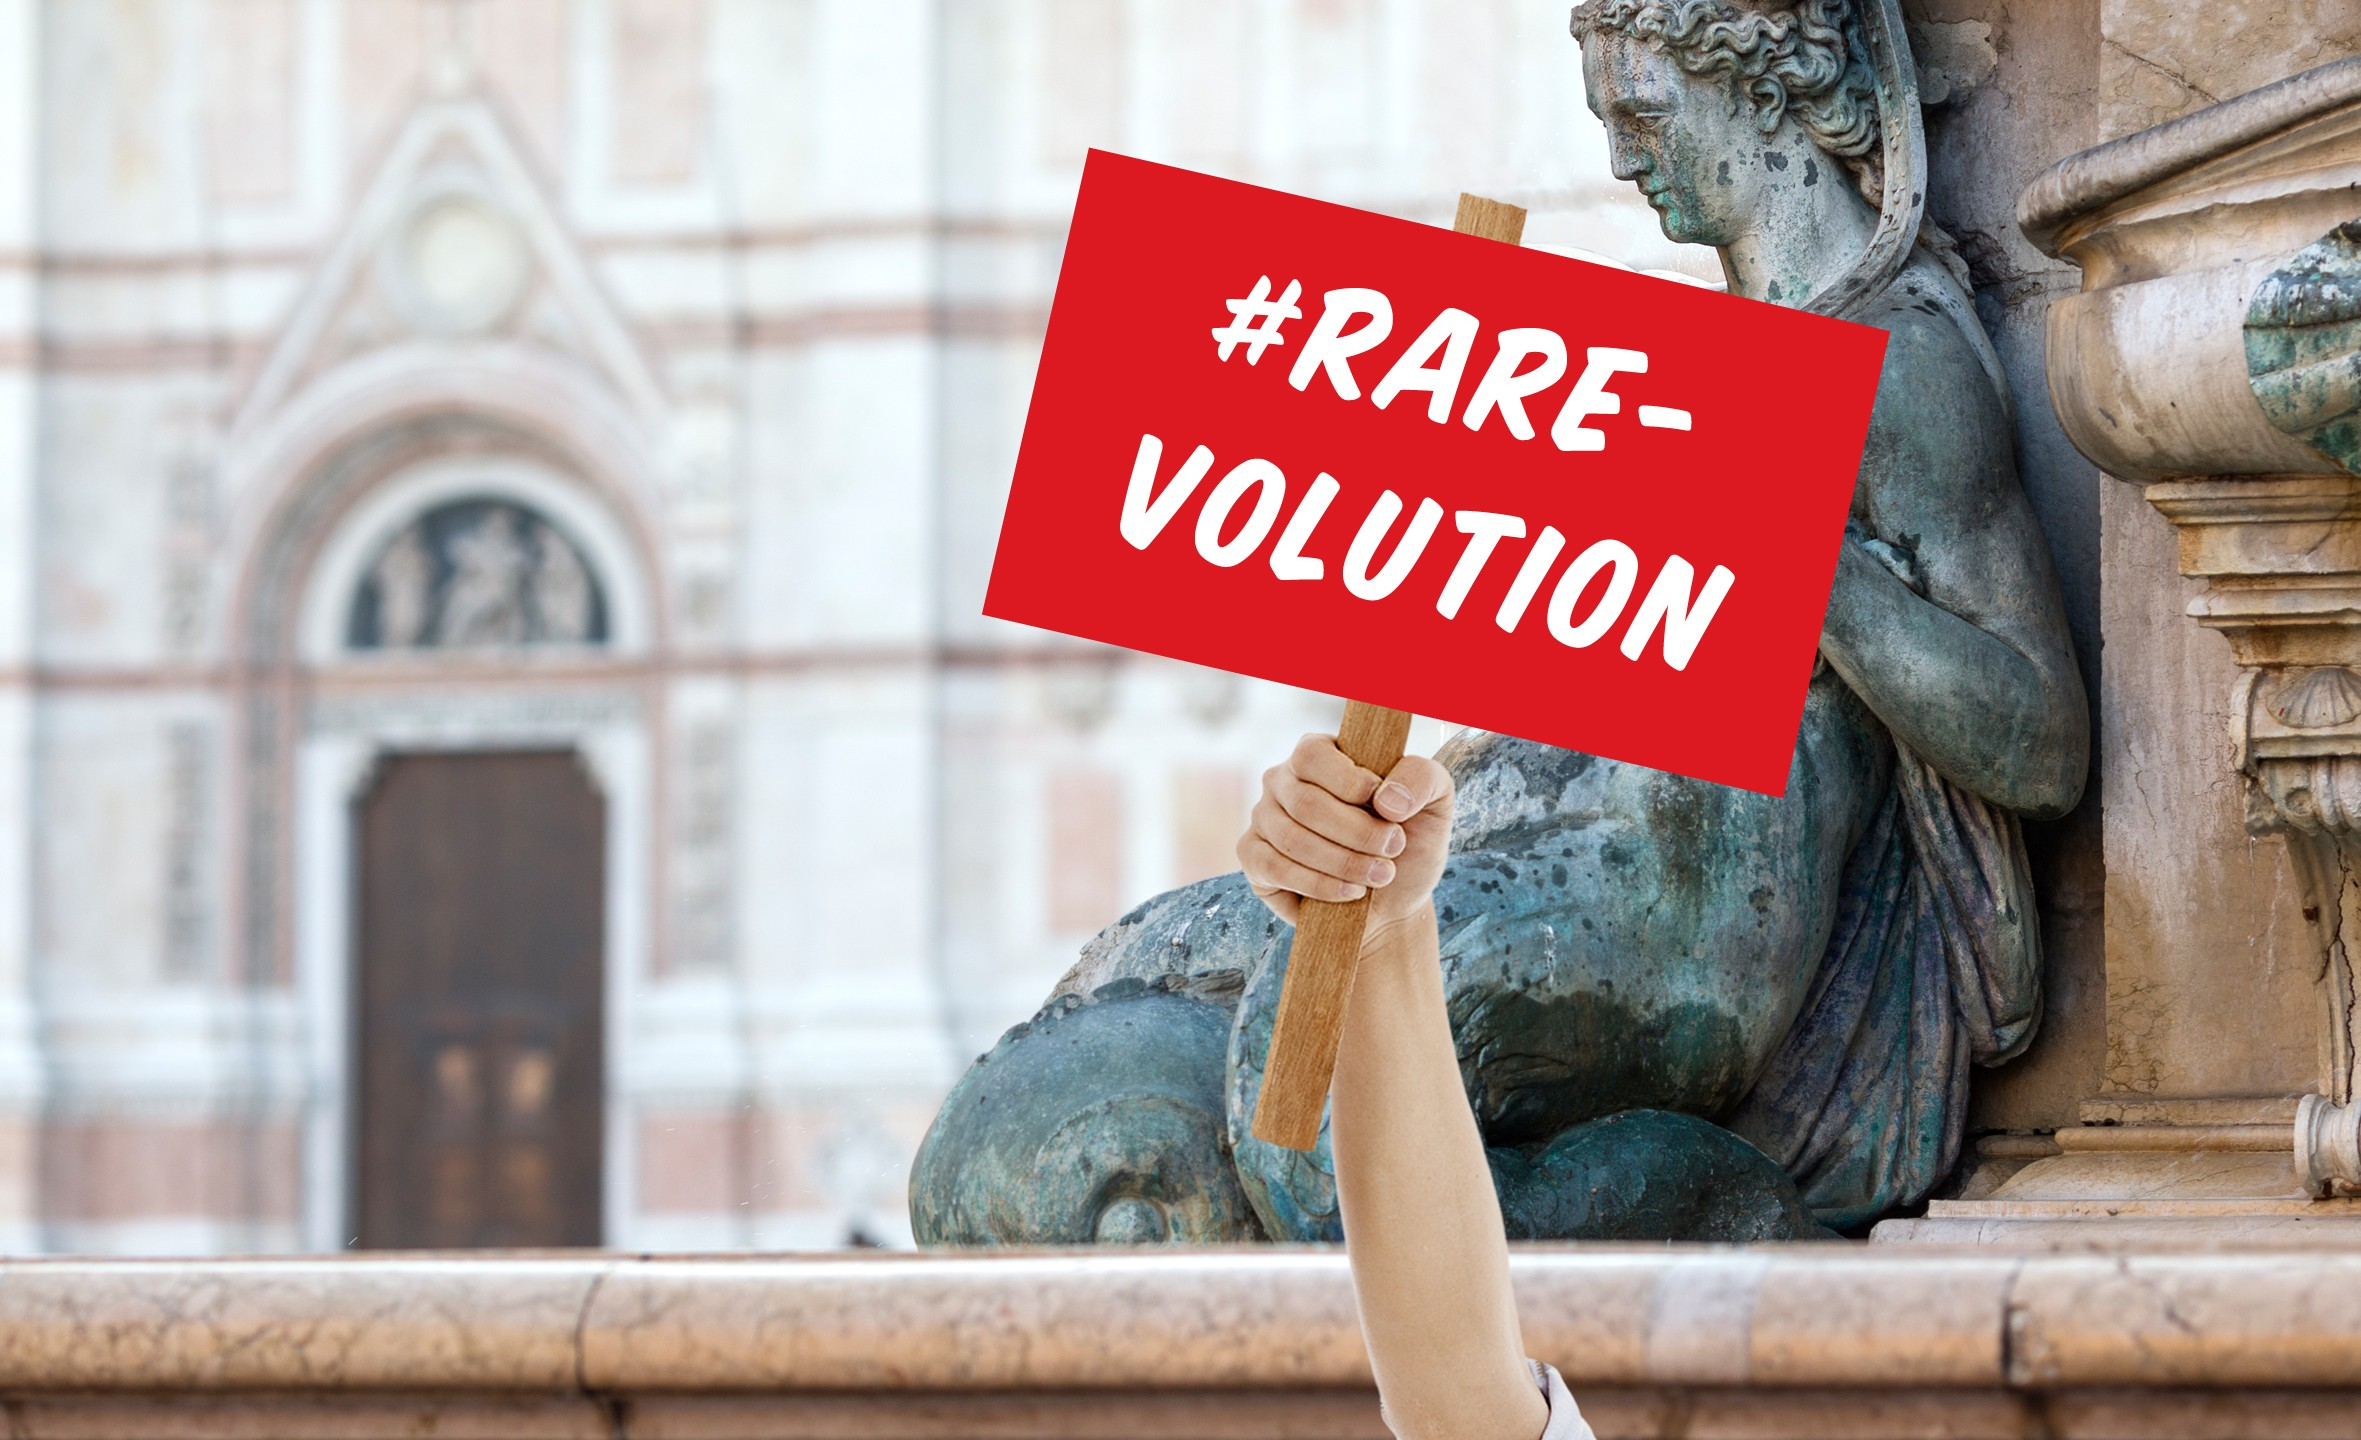 The RE(ACT) Congress will take place on March 7-10, 2018 in Bologna, Italy